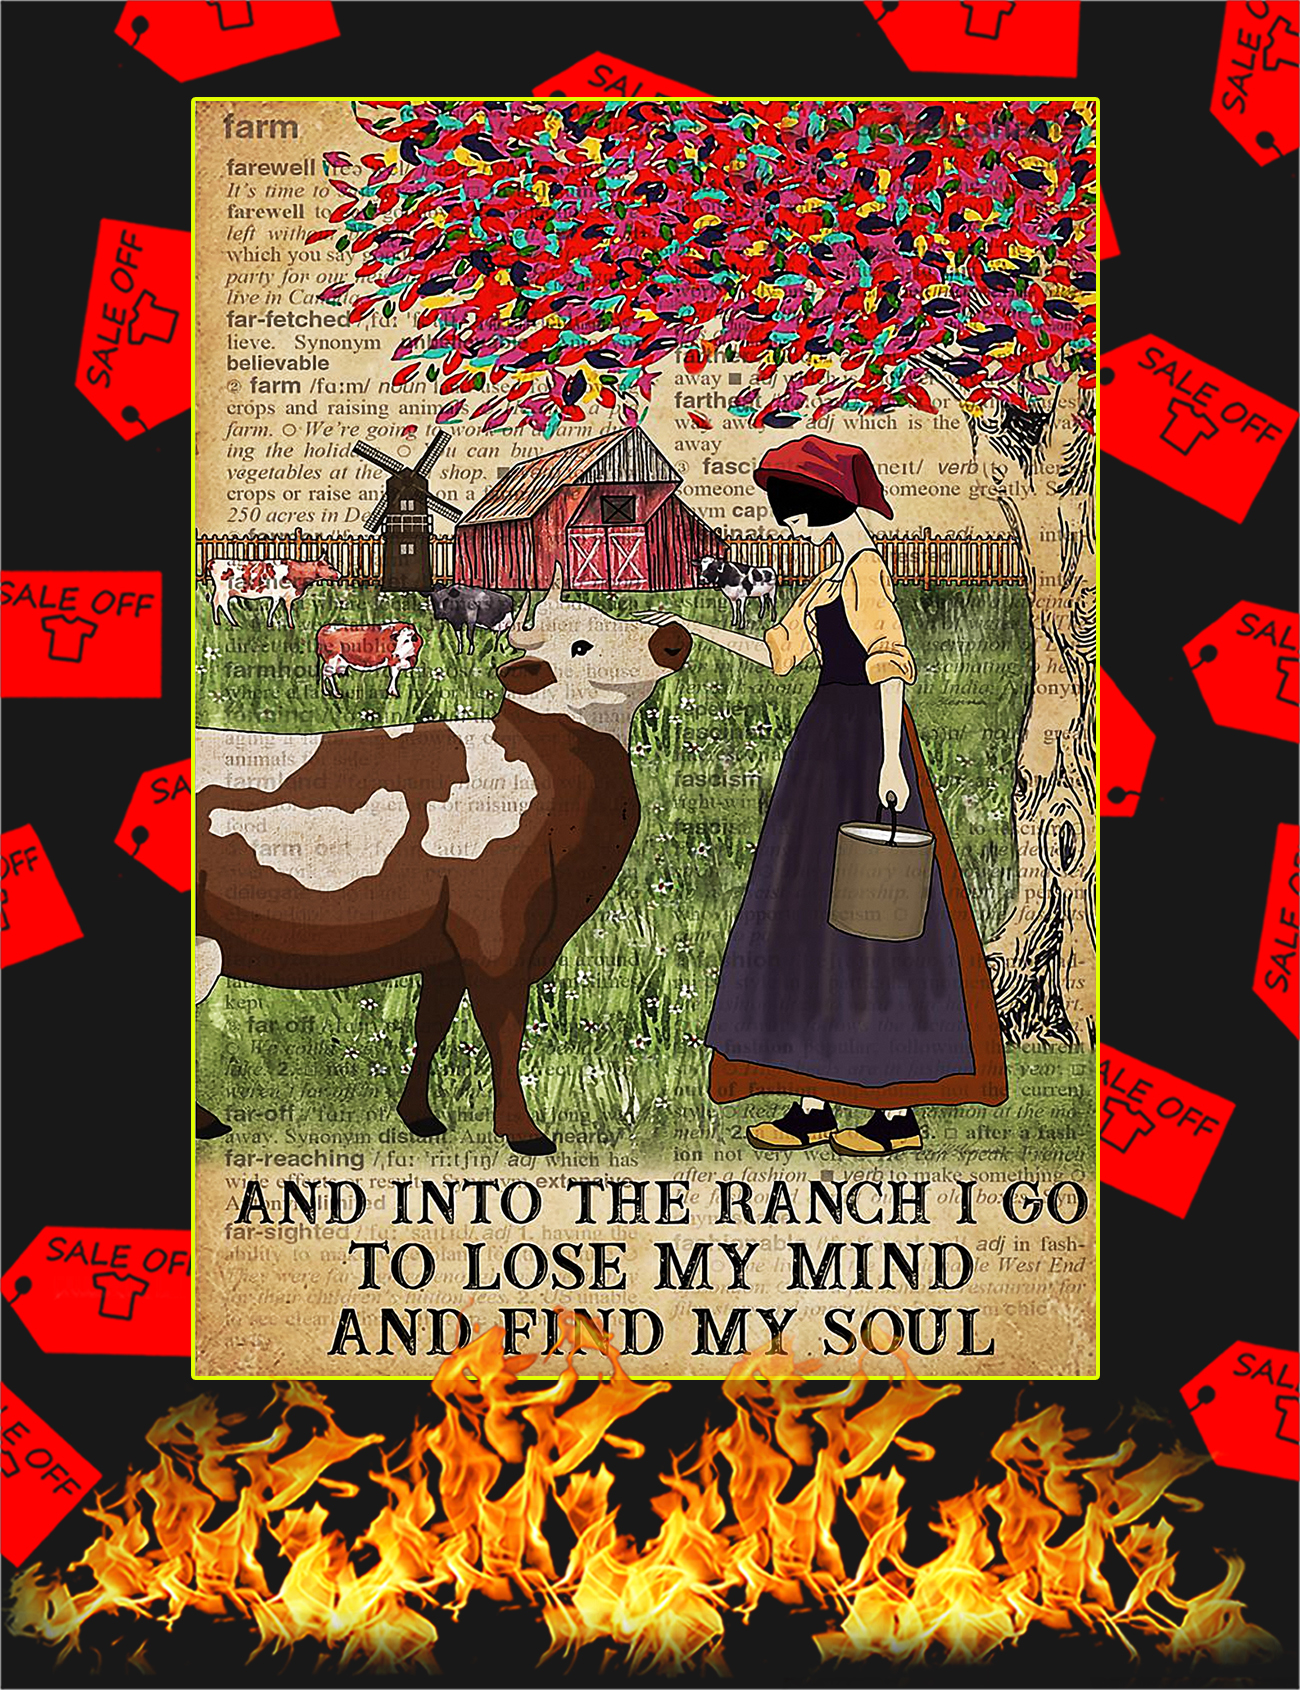 Dictionary cattle farm girl And into the ranch I go to lose my mind and find my soul poster - A4